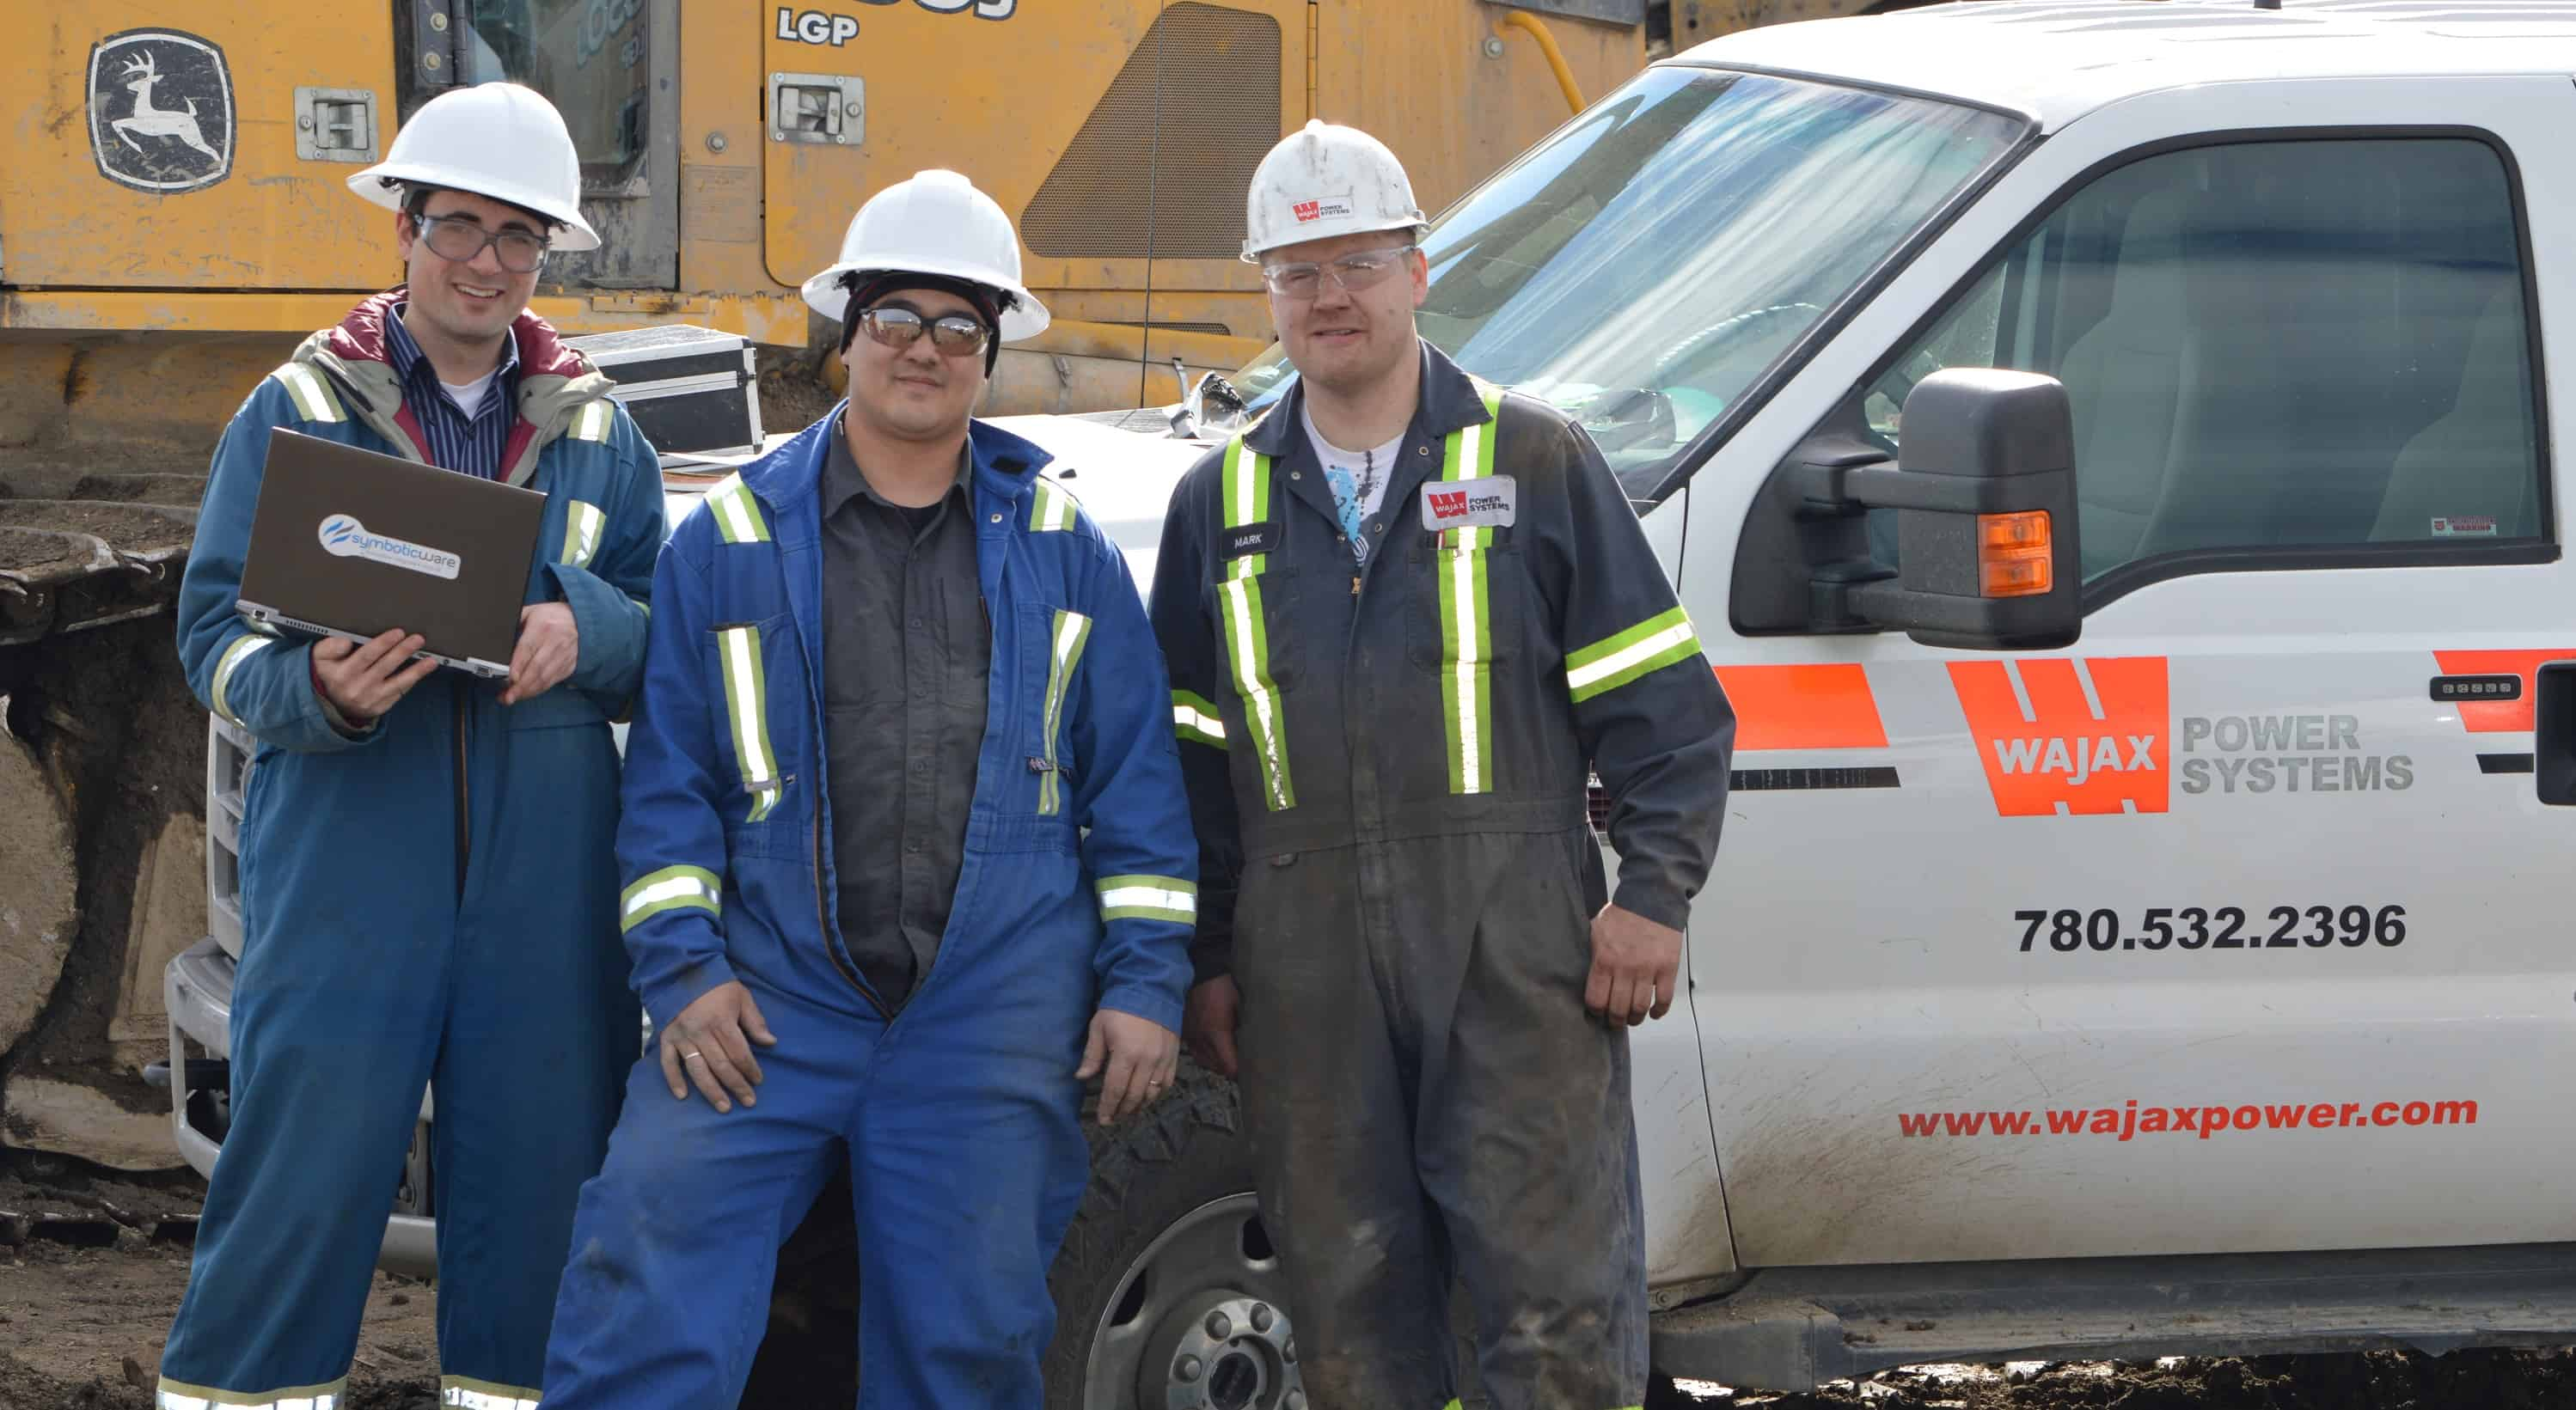 New Job Opportunities Are Available @ Wajax In ON, SK, QC, BC, & NB – Apply Today & Get Hired!